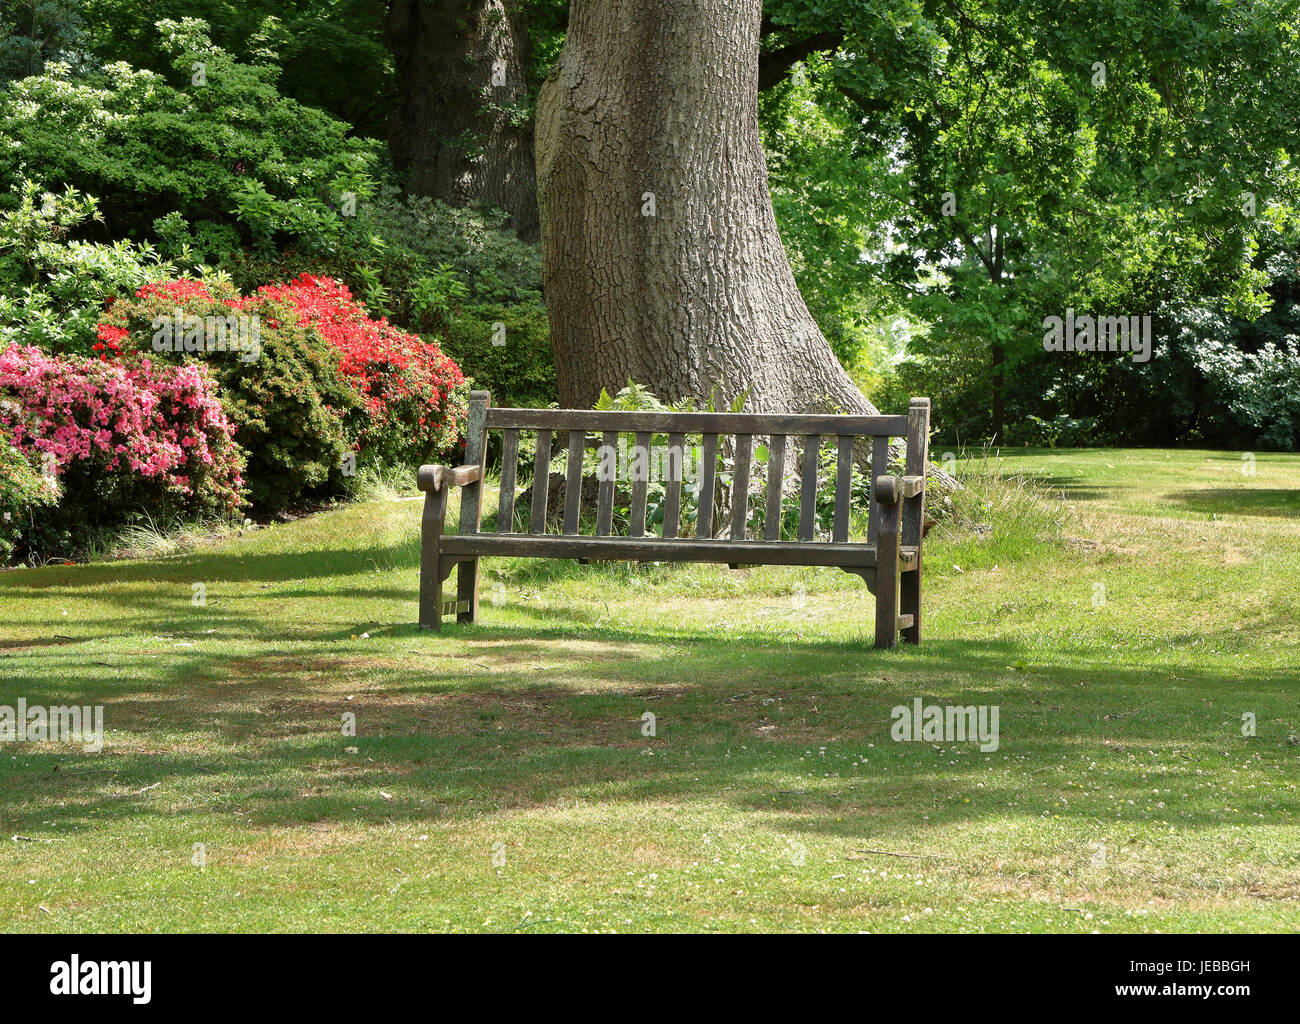 Bench seat in an english garden with a hedge filled with flowering Azaleas - Stock Image